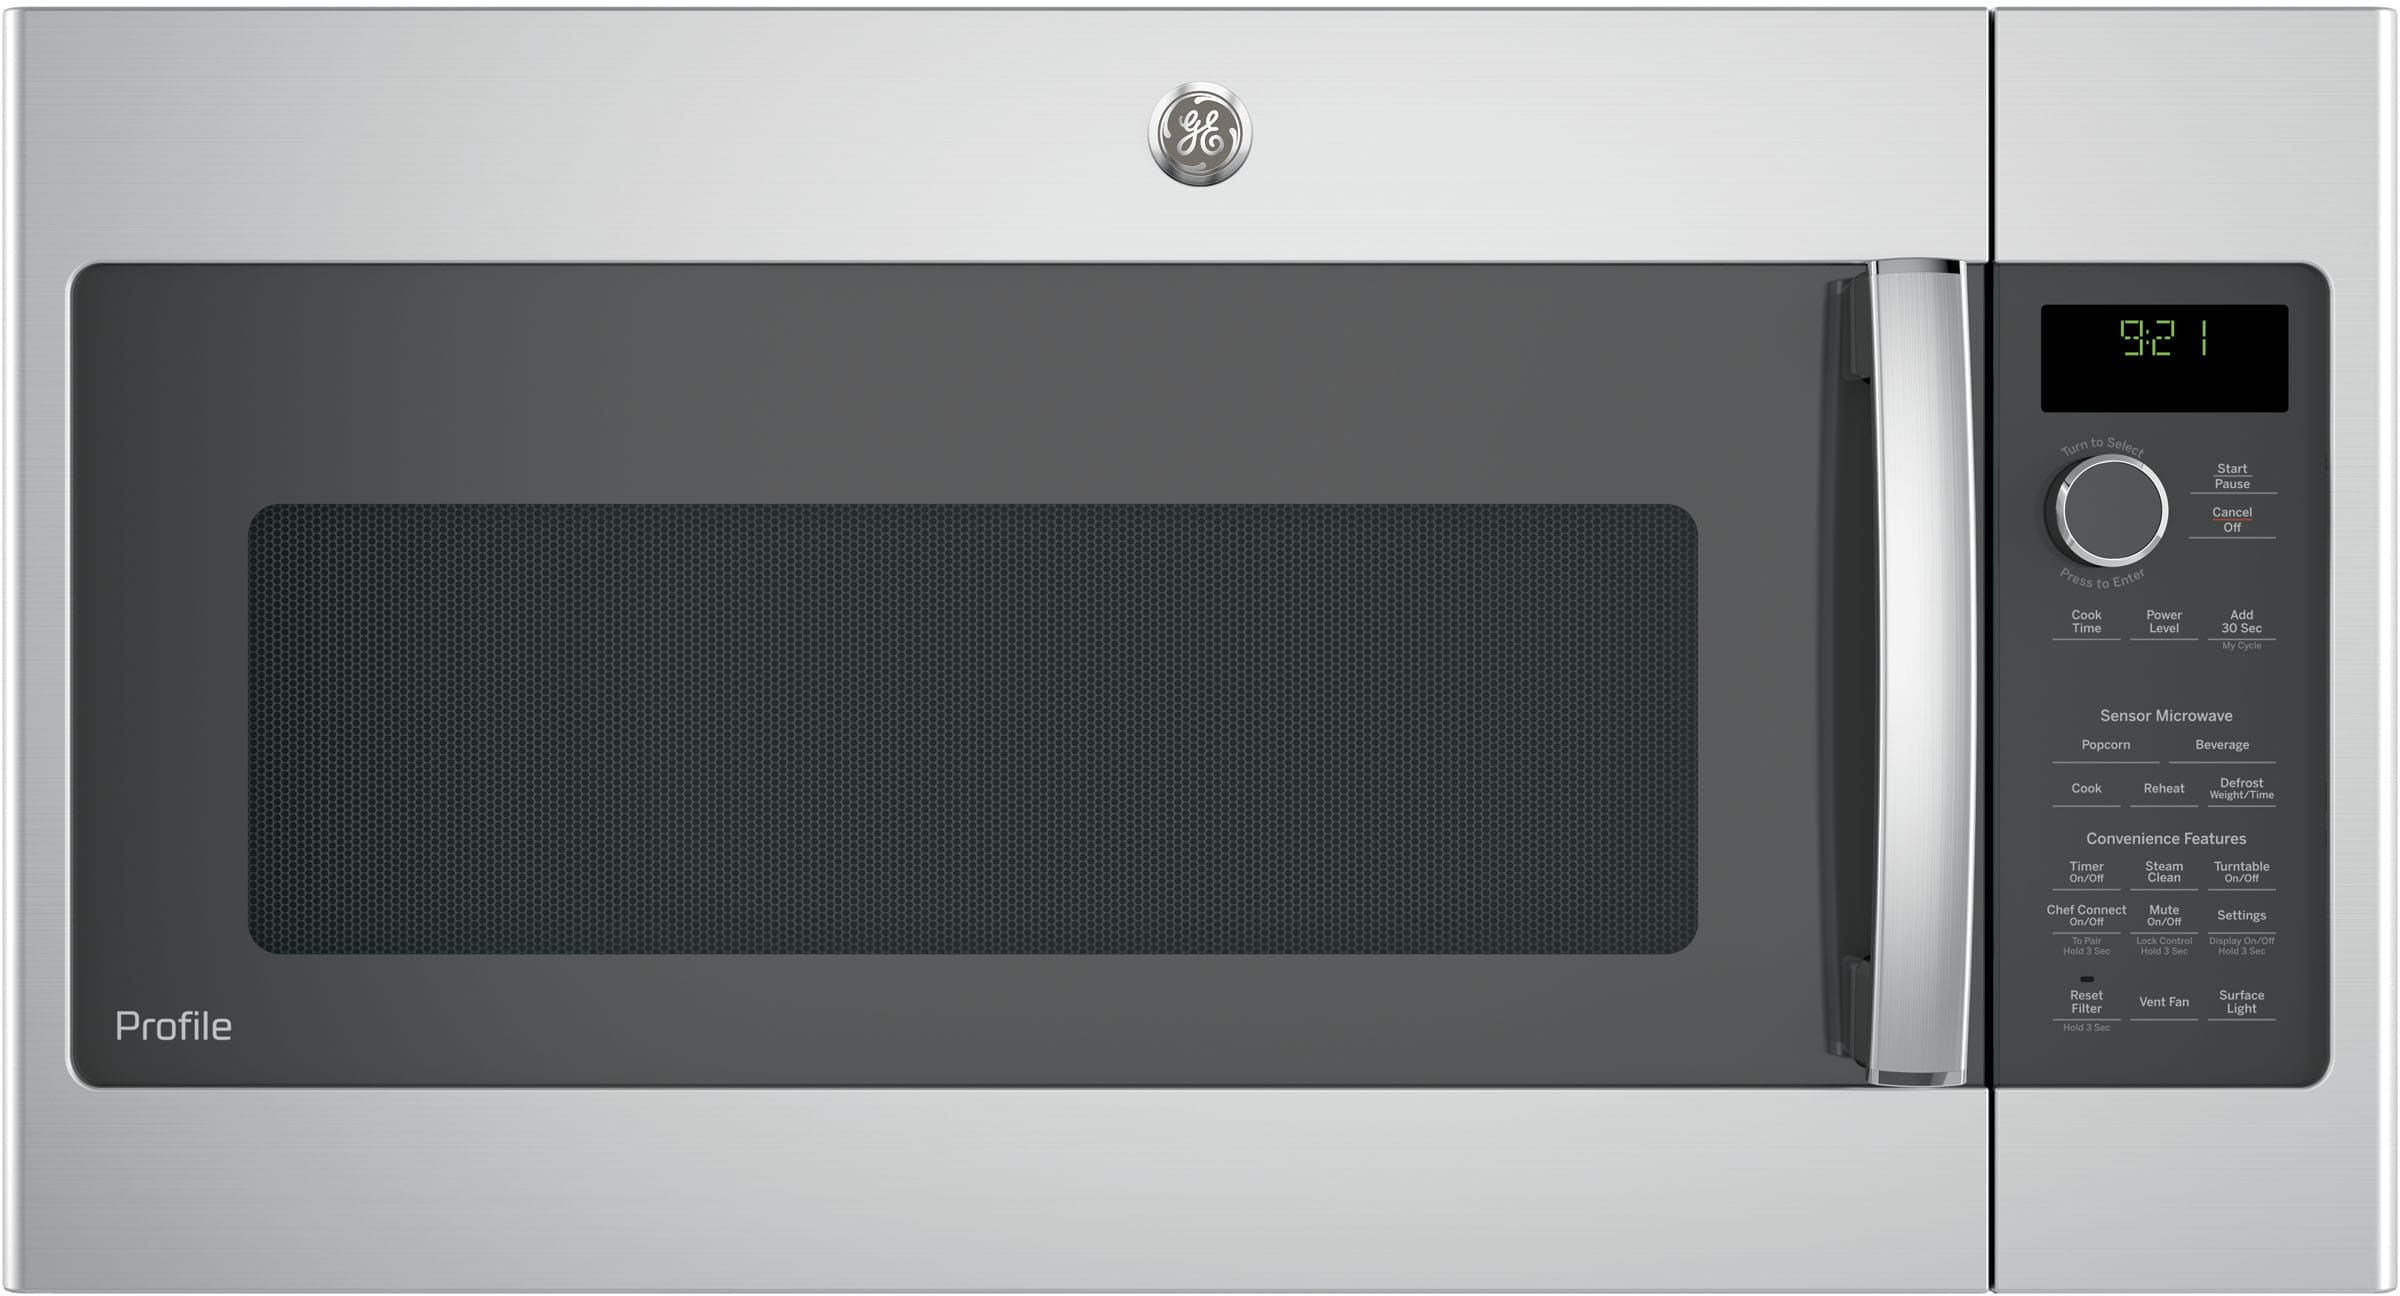 Ge Pvm9215skss 2 1 Cu Ft Over The Range Microwave With